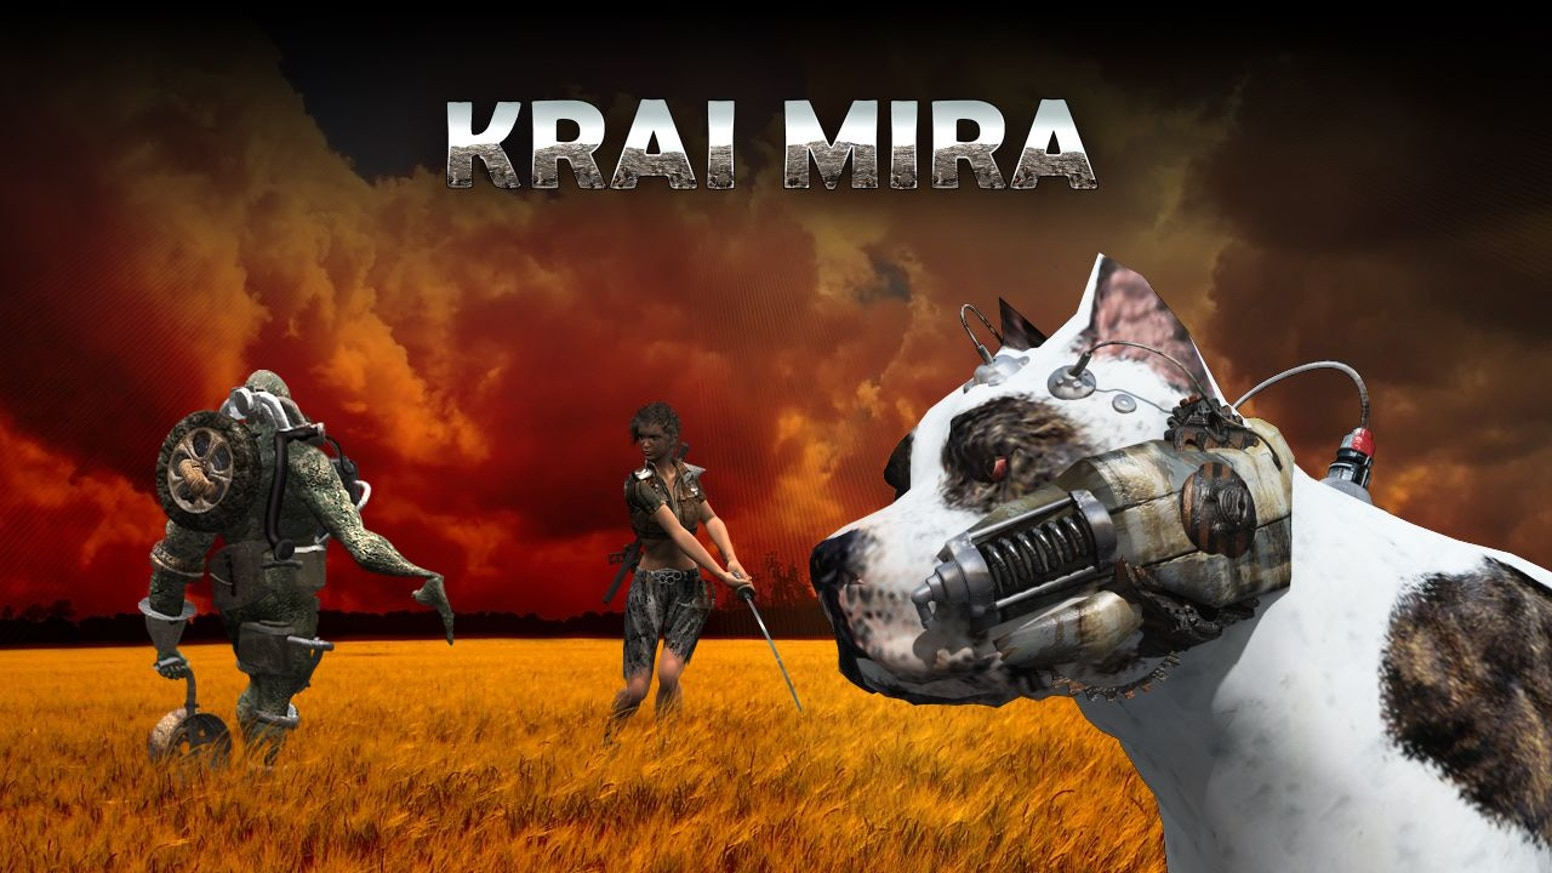 Krai Mira is a post-apocalyptic RPG that takes place on radioactive wastelands and swamps, dead settlements, caves and forests.